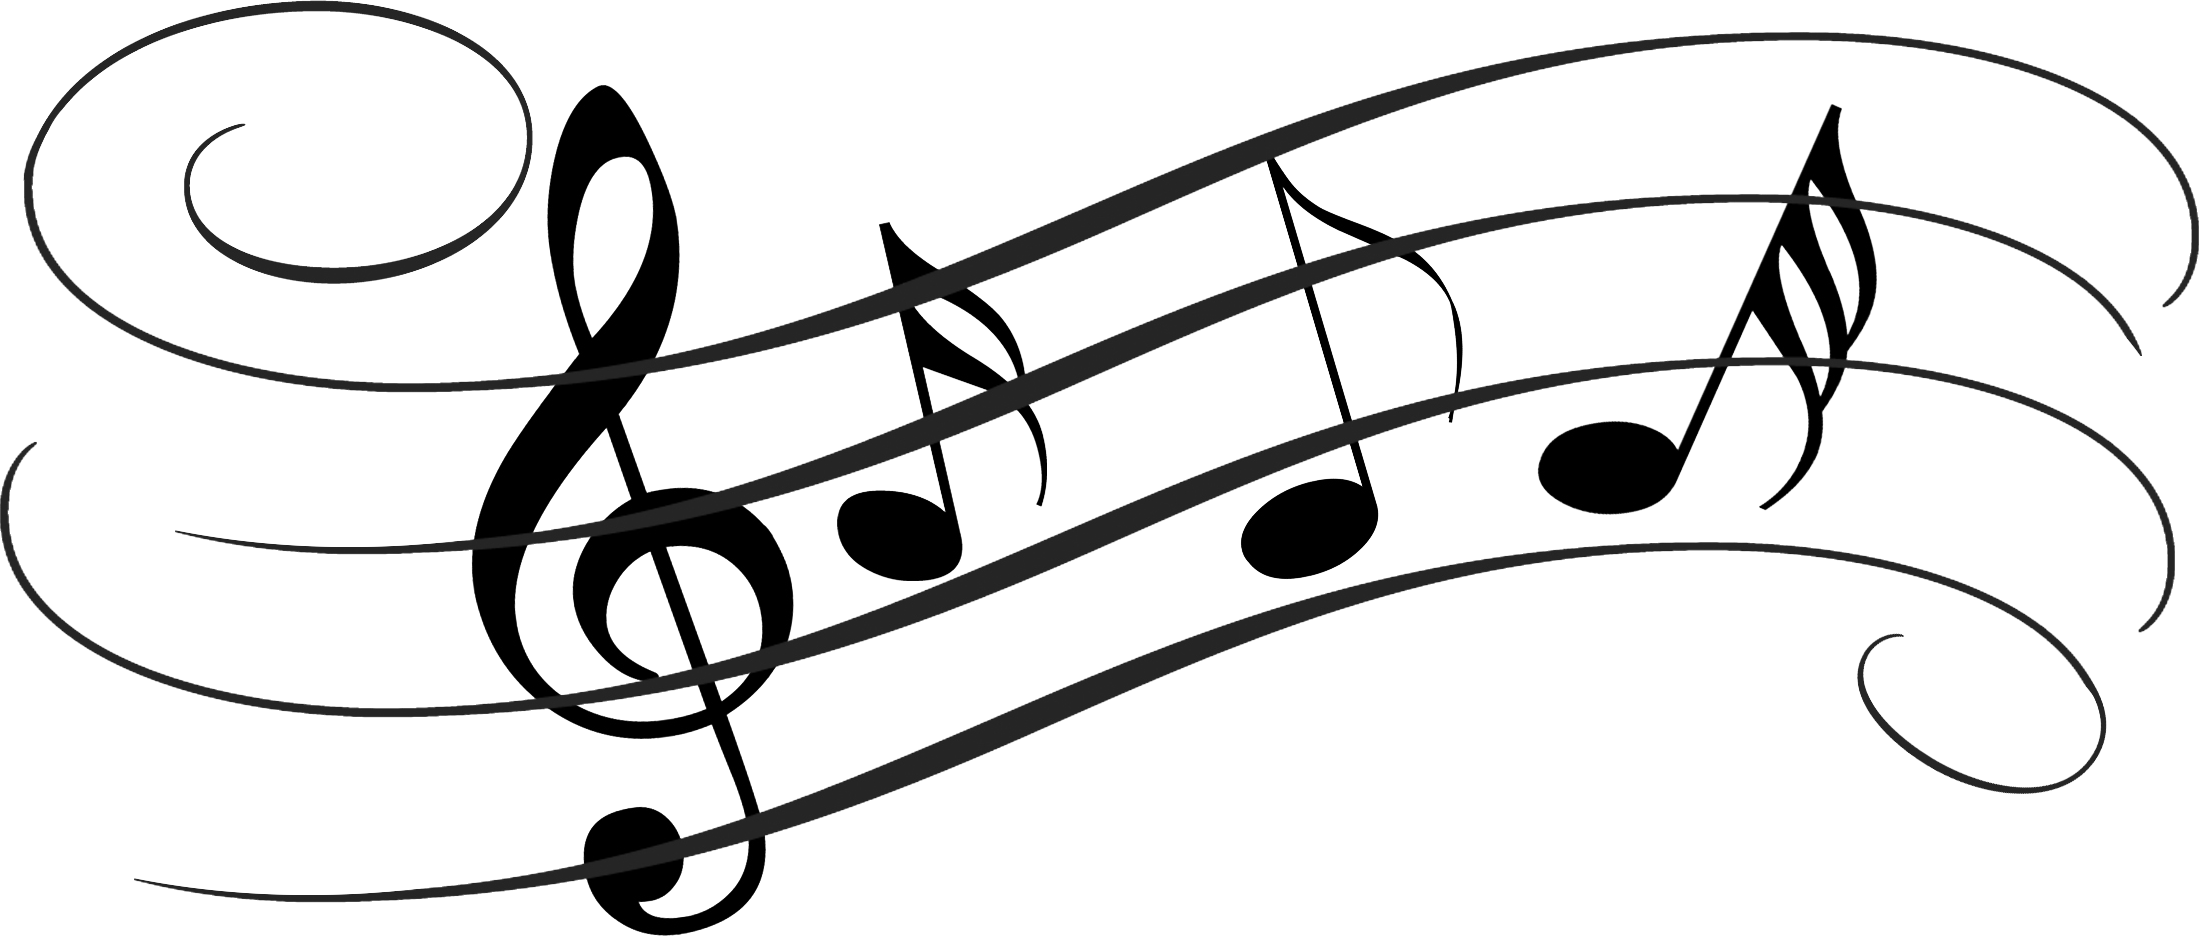 Music clipart rock.  collection of black